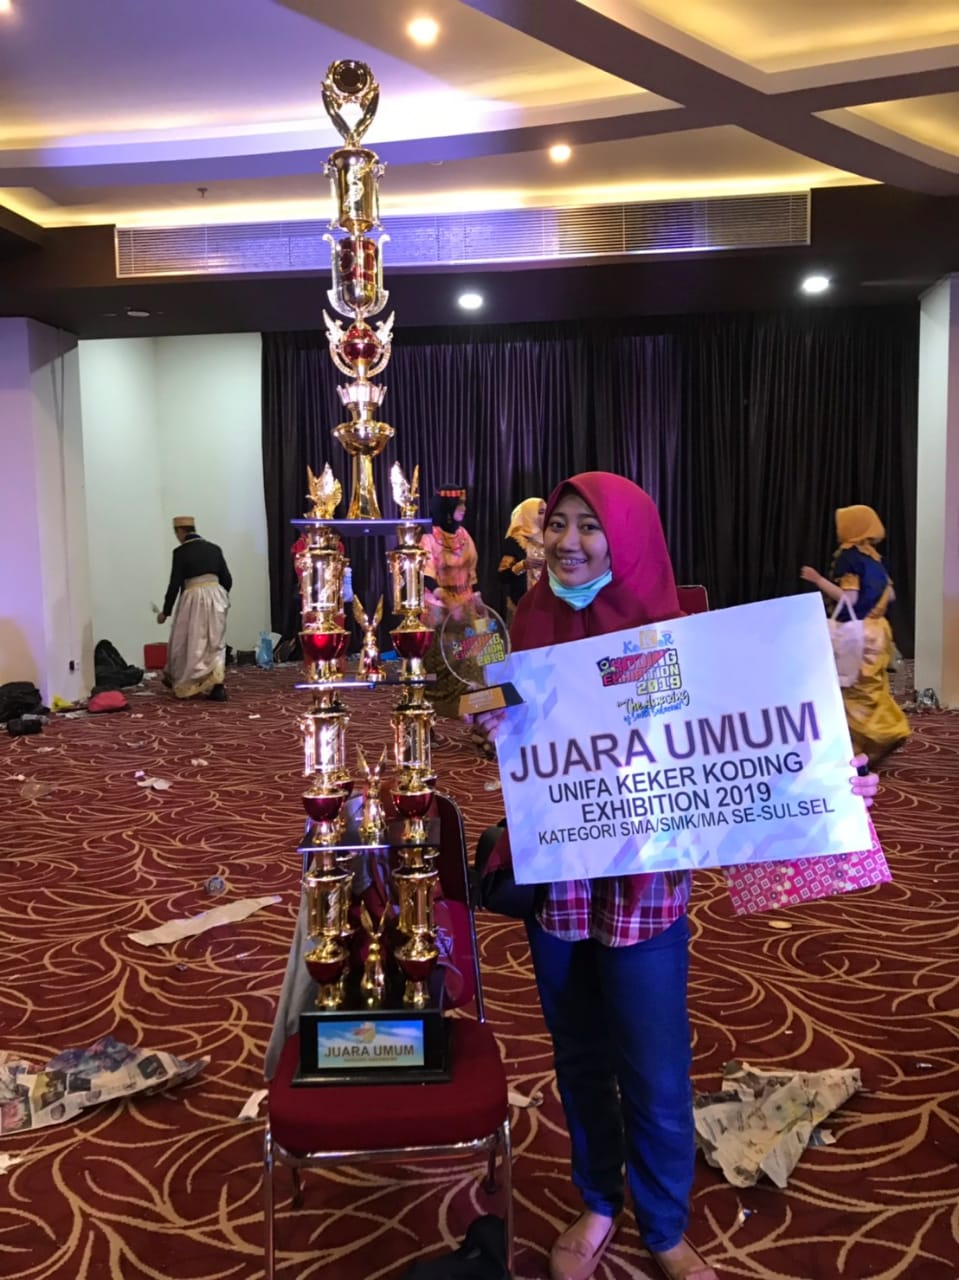 Juara Umum UNIFA Keker Koding Exhibition 2019